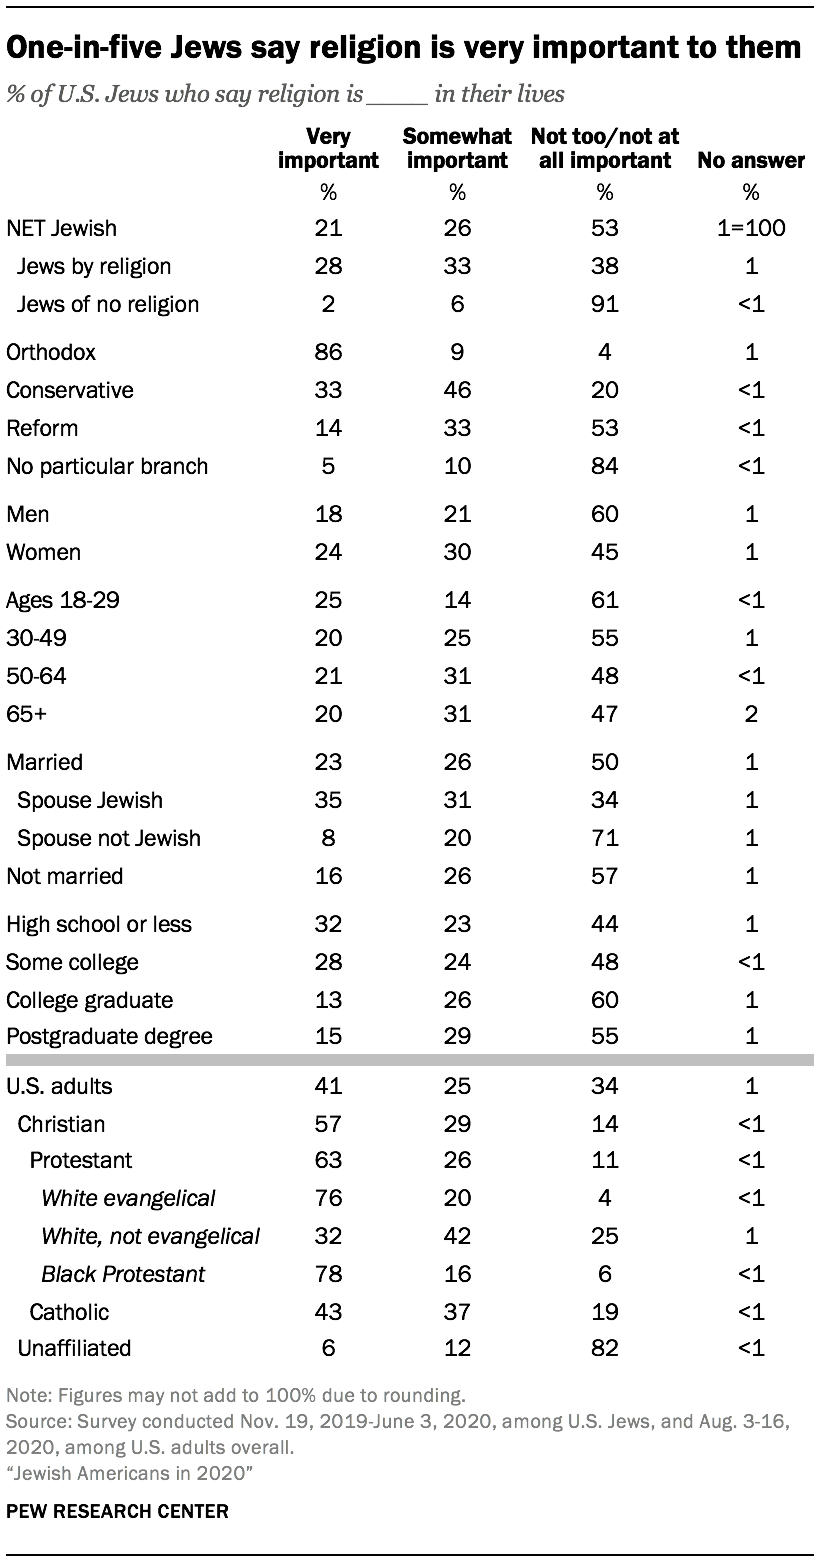 One-in-five Jews say religion is very important to them